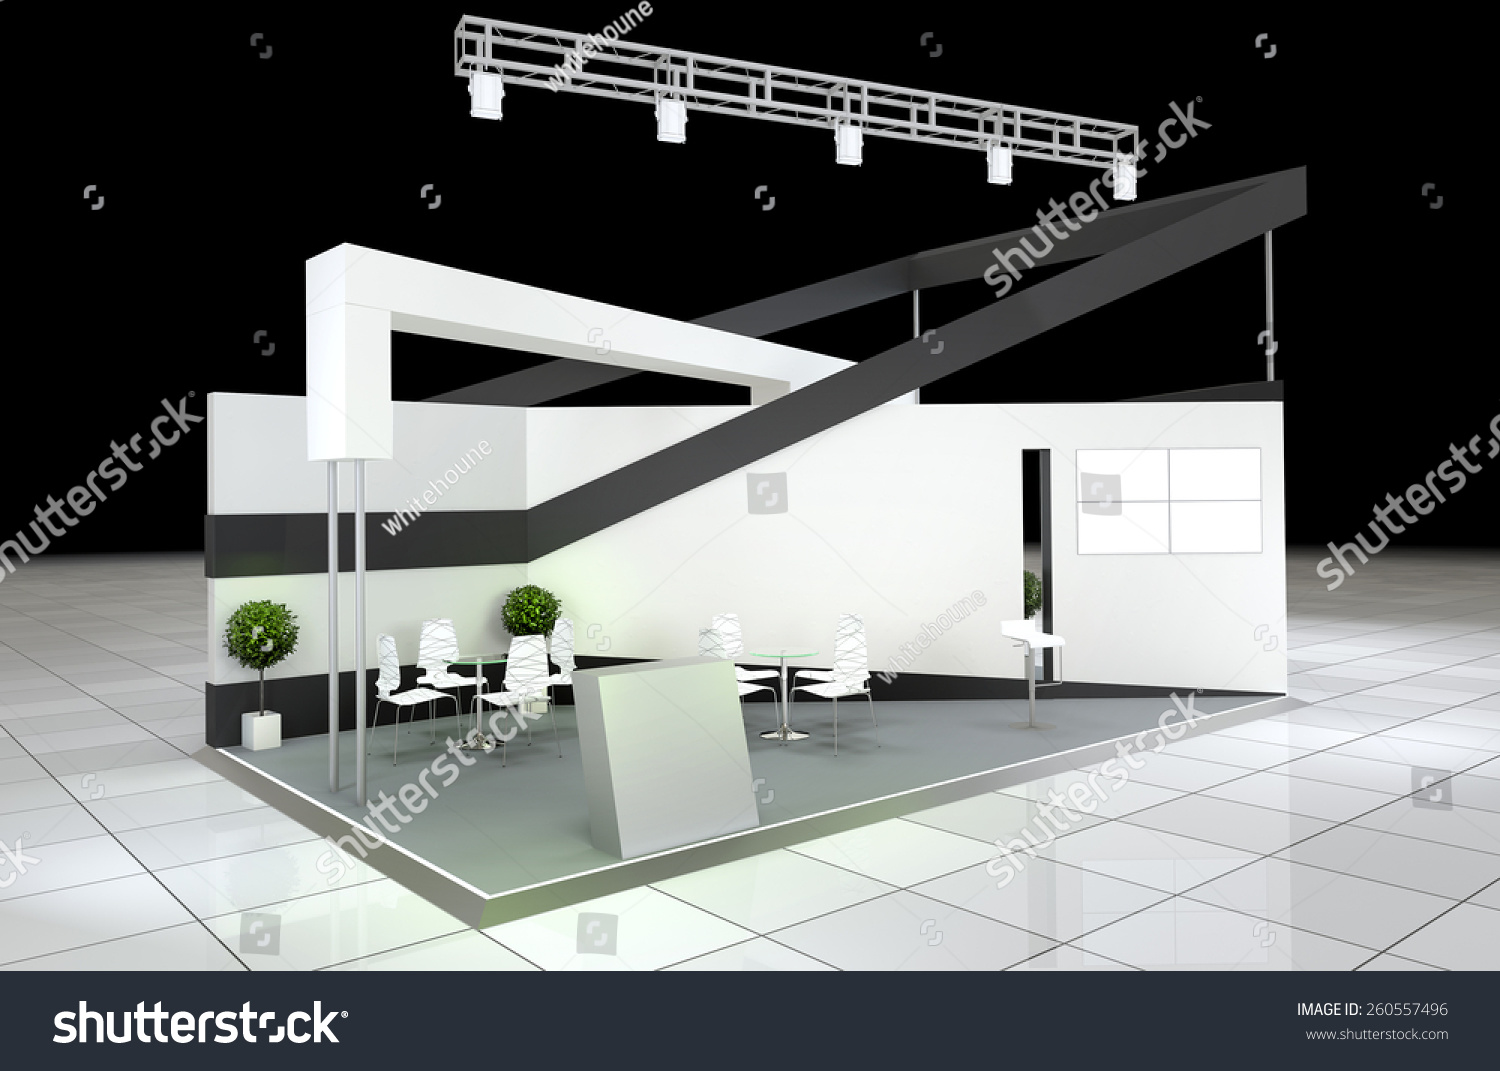 Modern Exhibition Stand : Modern design abstract exhibition stand stock illustration